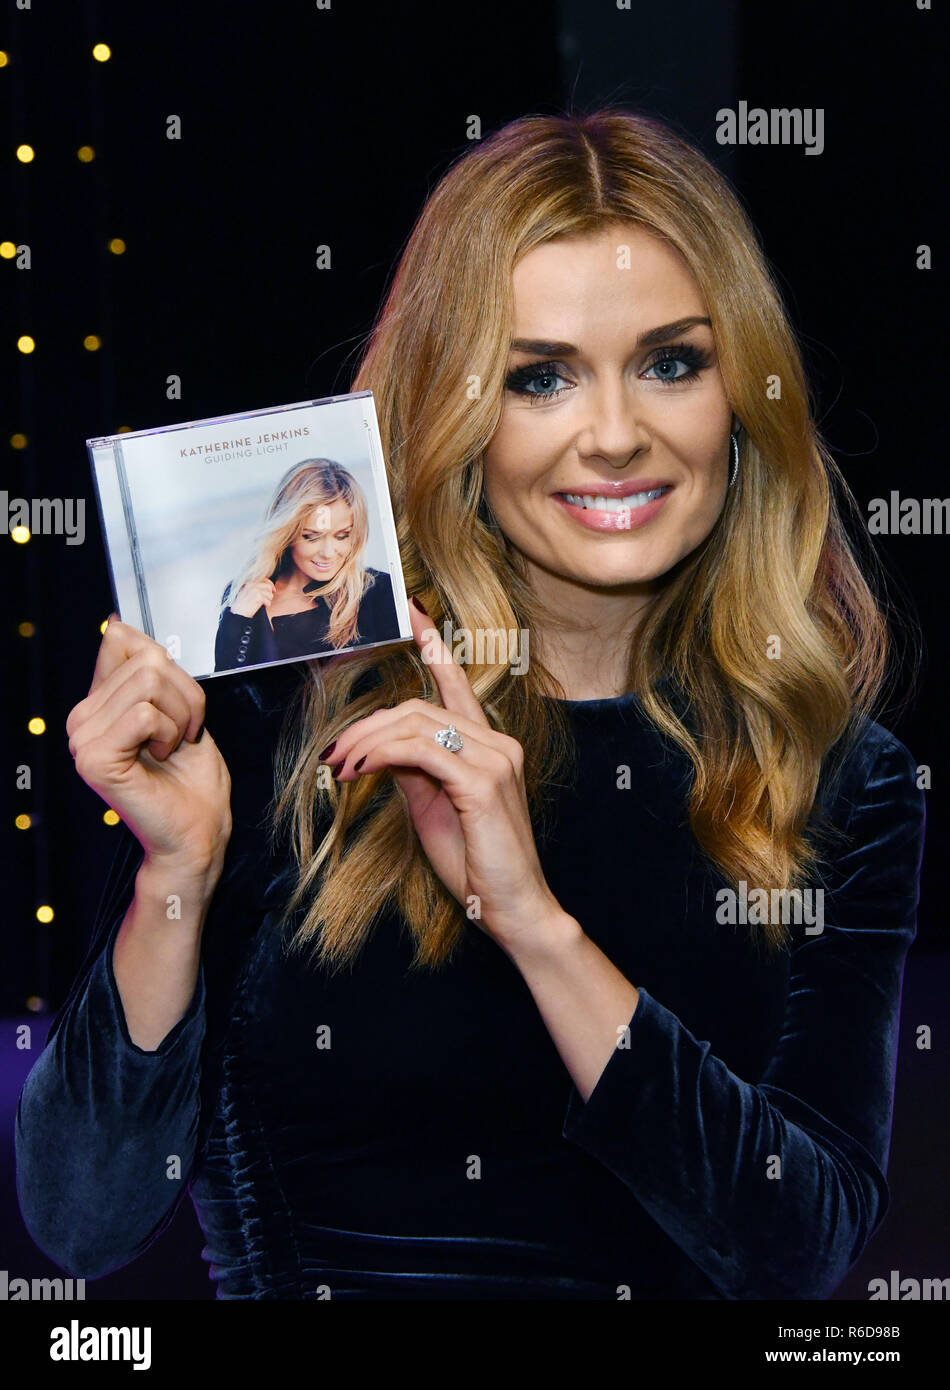 London, UK. 5th December, 2018. Katherine Jenkins, Welsh lyric mezzo-soprano and classical-crossover singer/songwriter meets fans and signs copies of her new album Guiding Light, at HMV Oxford Street Credit: Nils Jorgensen/Alamy Live News - Stock Image